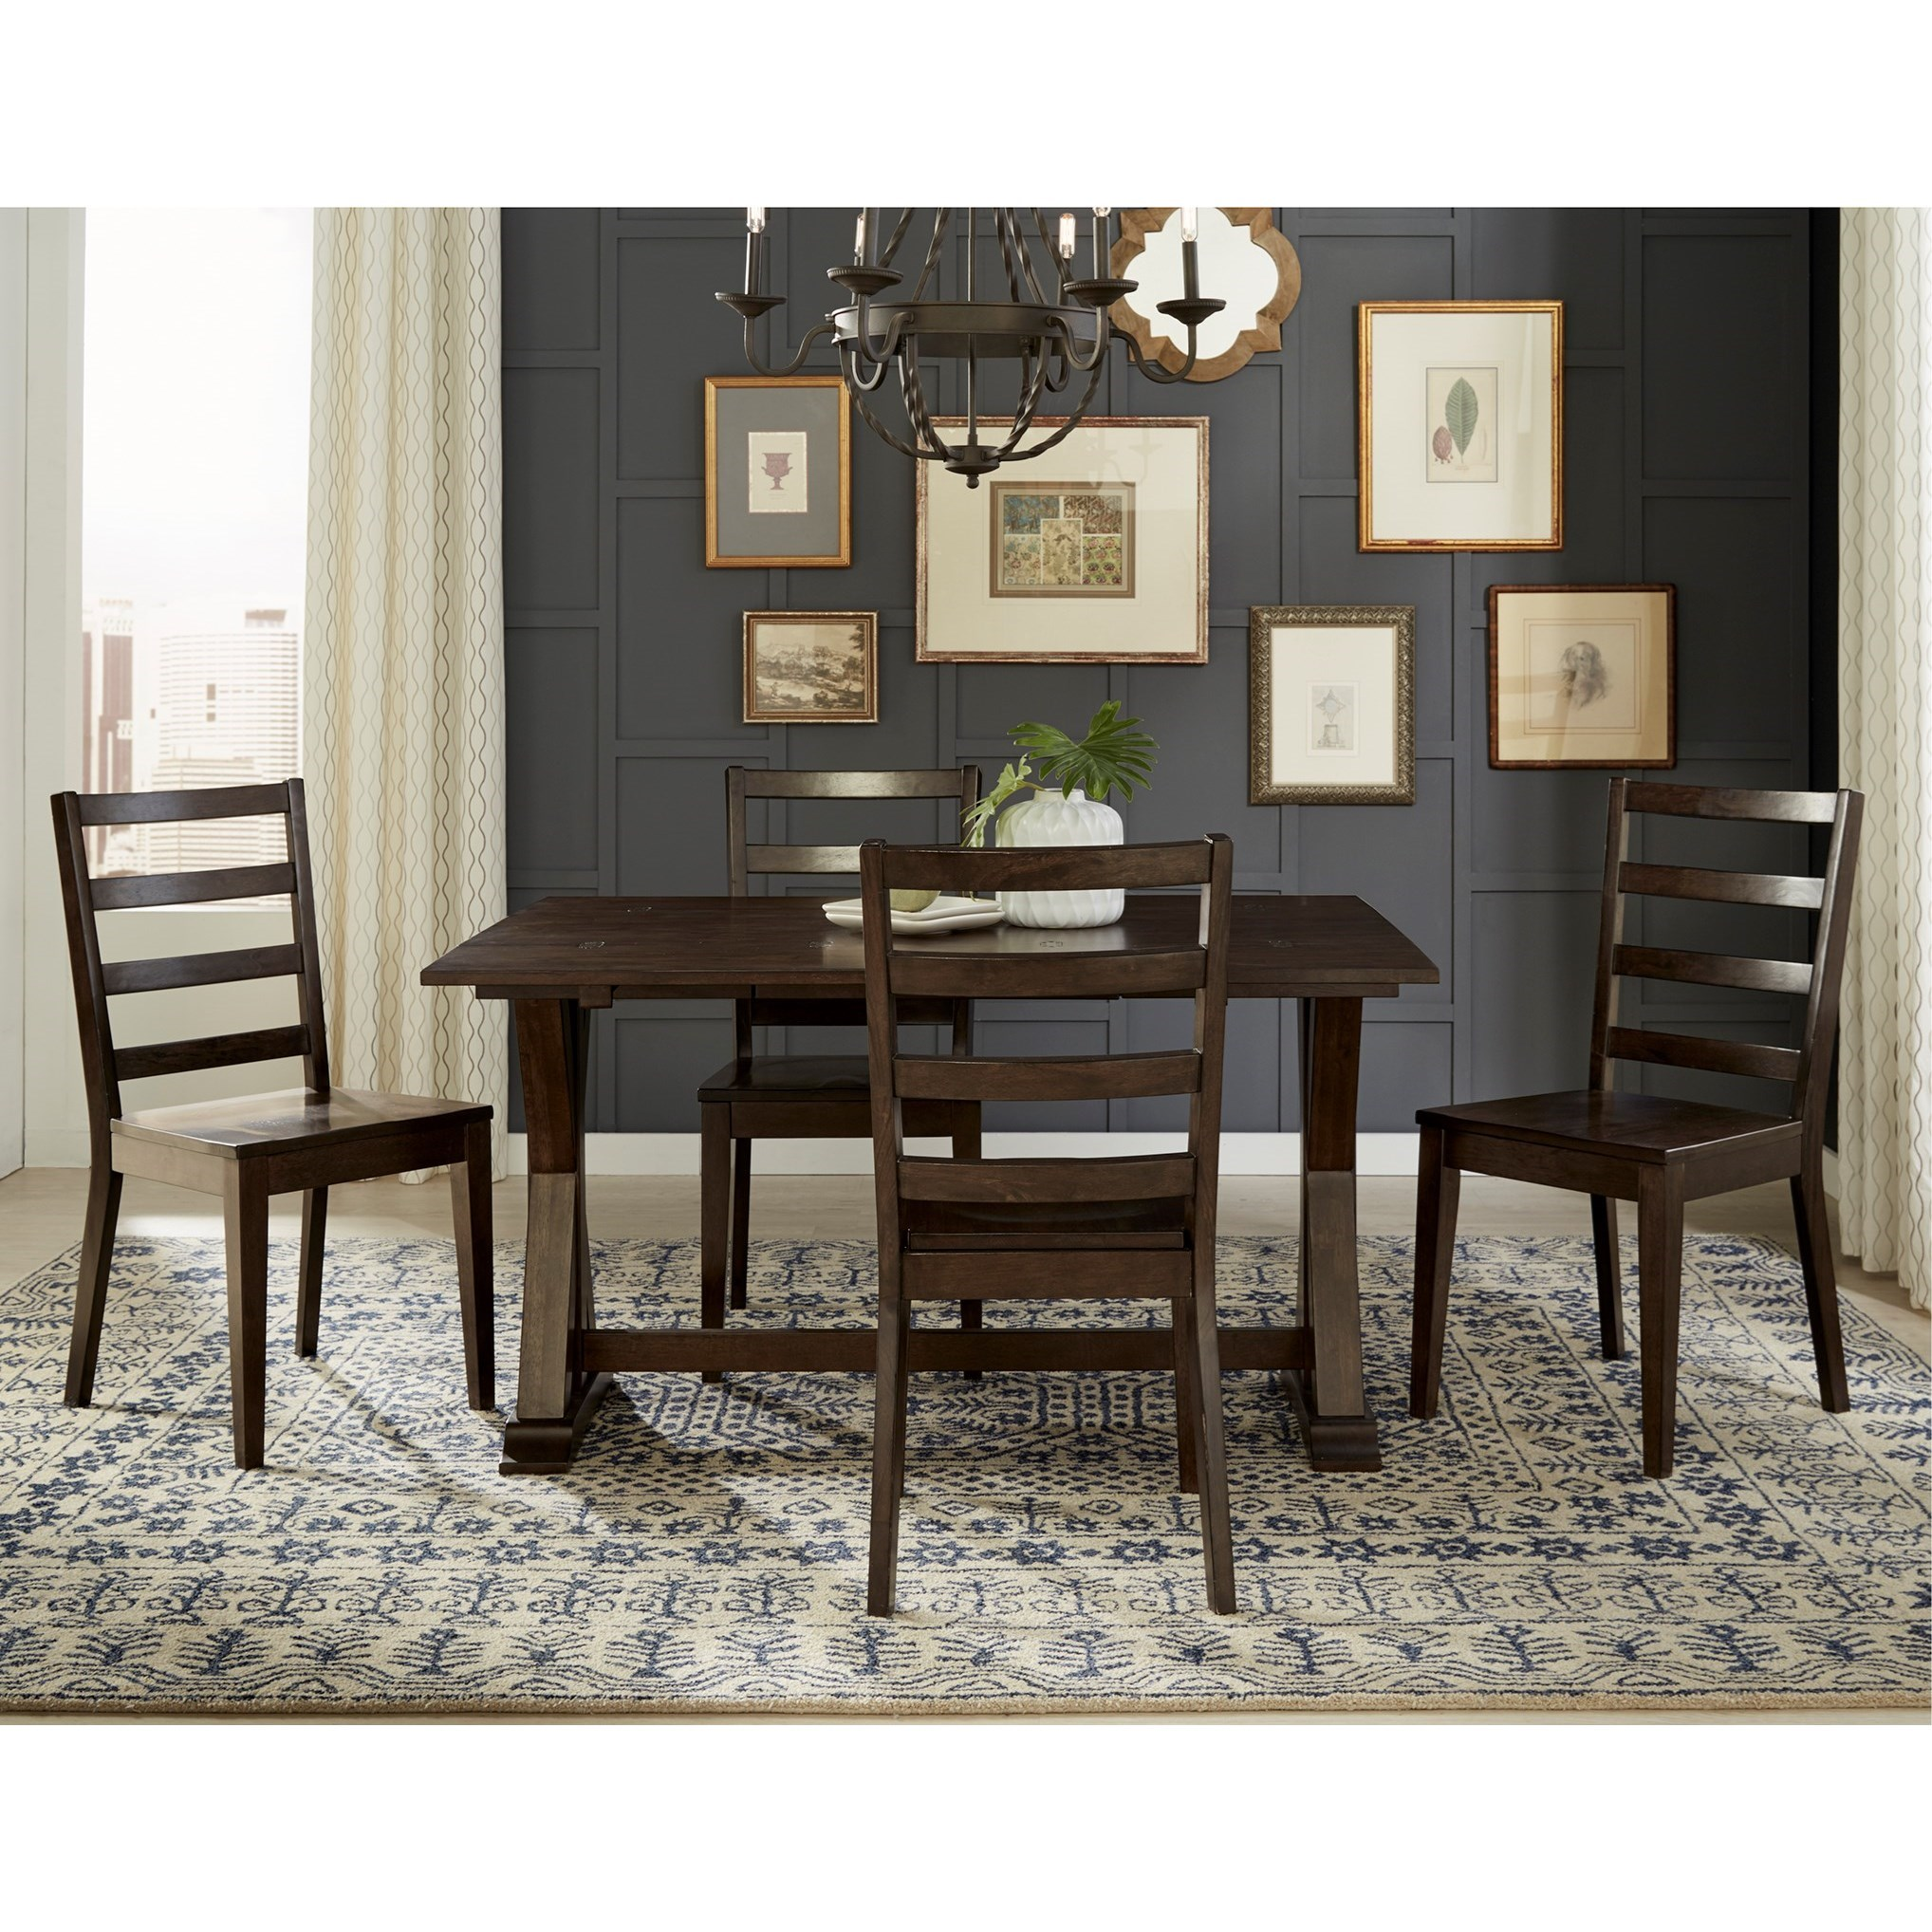 The Dining Room Brooklyn: AAmerica Brooklyn Heights Square Dining Leg Table With